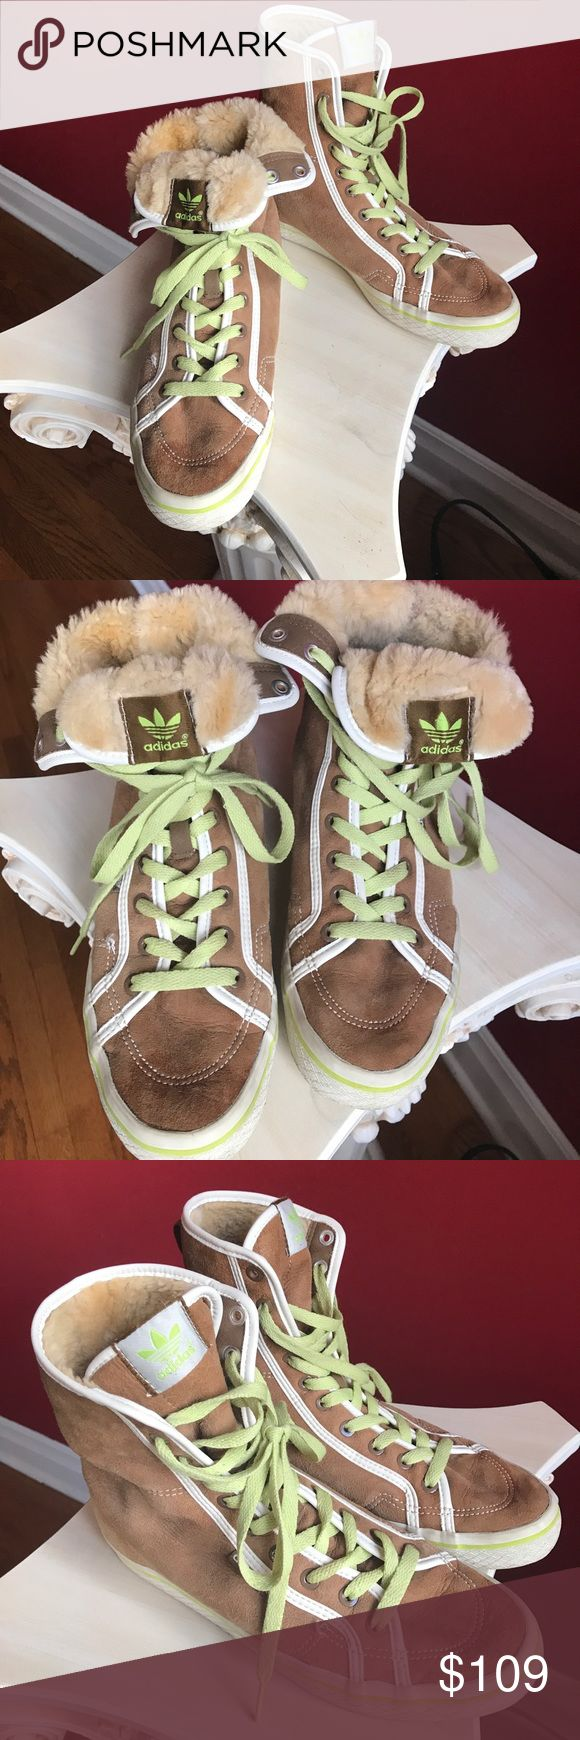 Fur lined Adiddas Wear your sneakers all winter long with keeping your tootsies wArm. Lined in sheepskin. Who says you have to forgo comfort for style. Adiddas Shoes